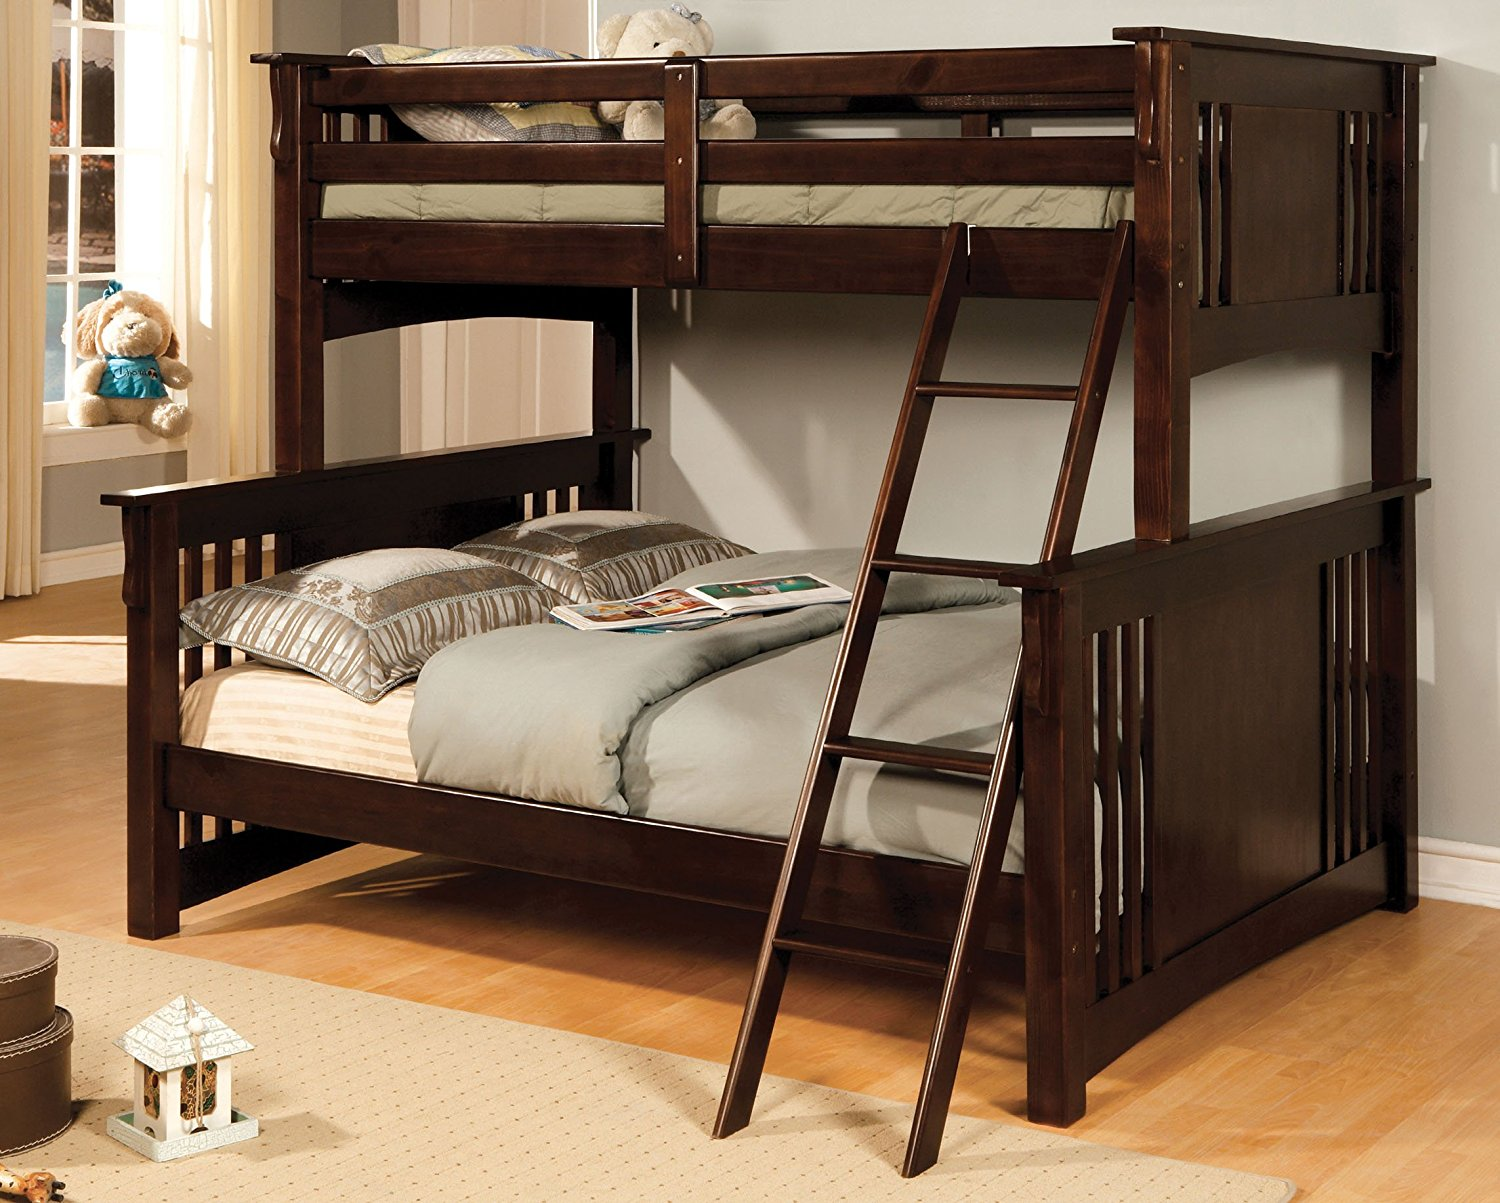 cool bunk beds for toddlers